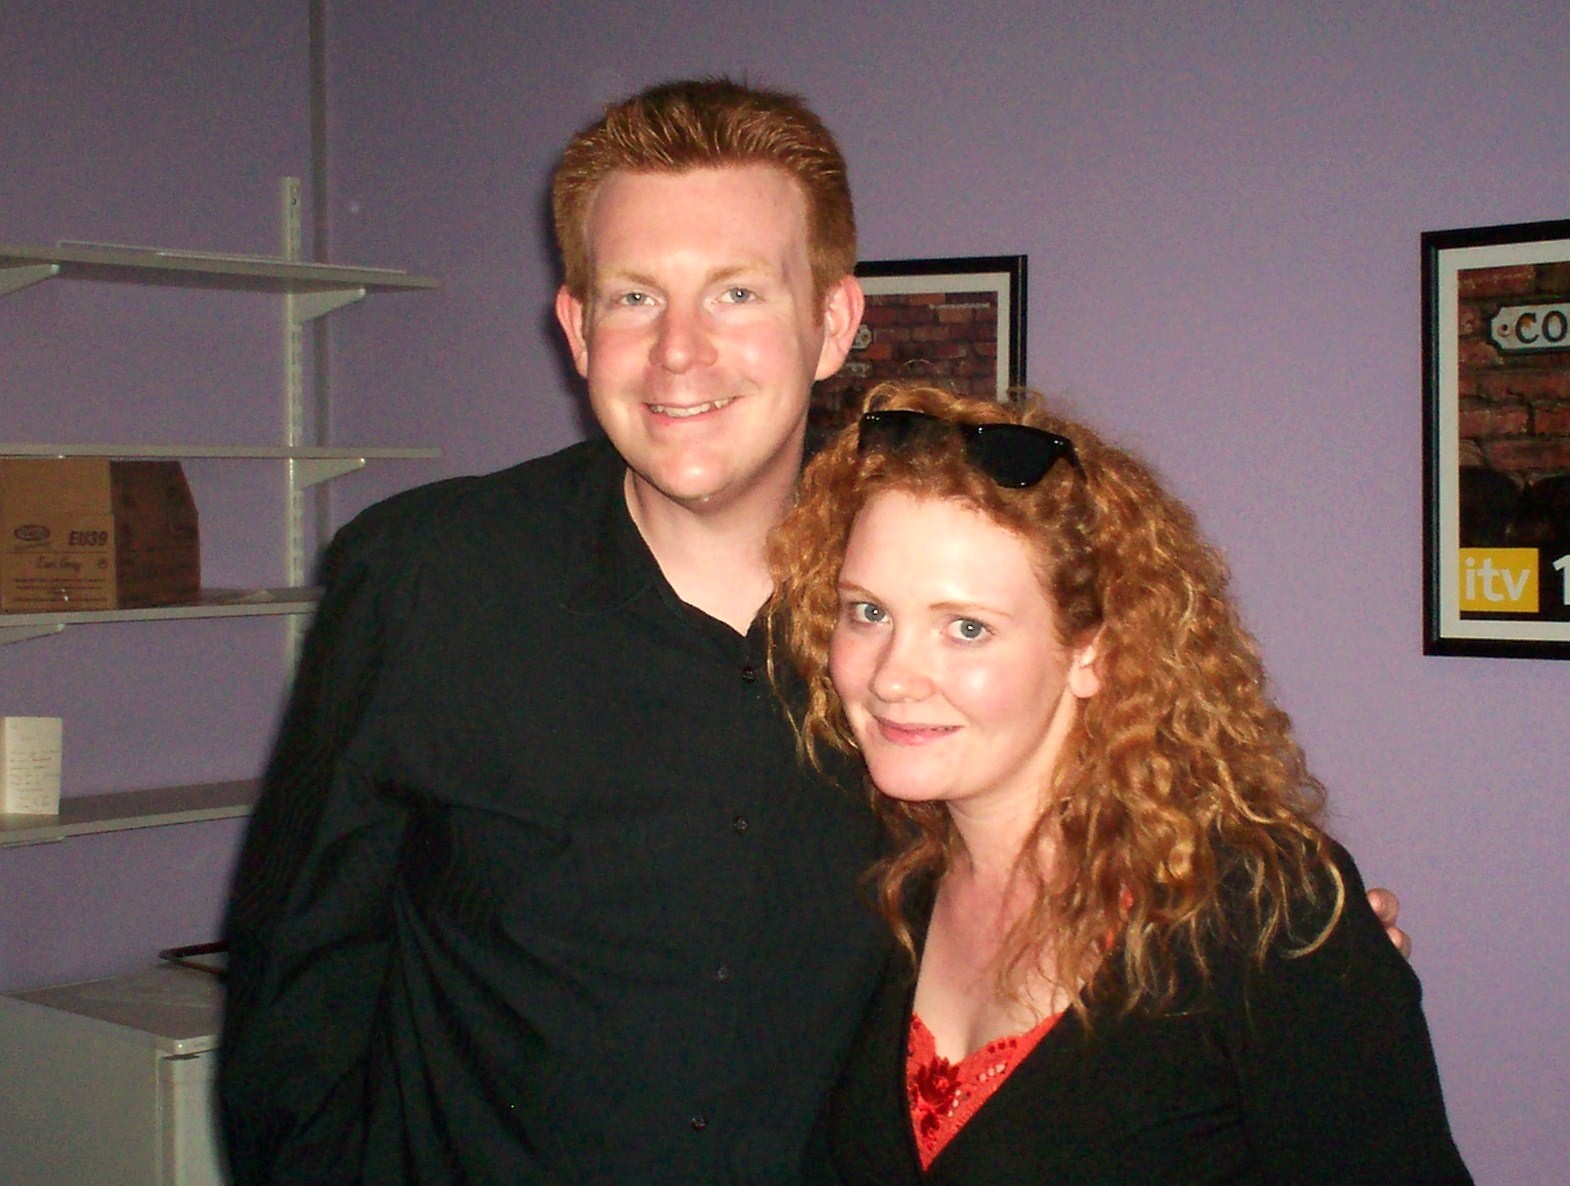 Enjoy Celebrity Radio's Jennie McAlpine Life Story Interview – Fizz Coronation Street…. Jennie McAlpine has Starred on Coronation Street for over 10 years. She is best known […]